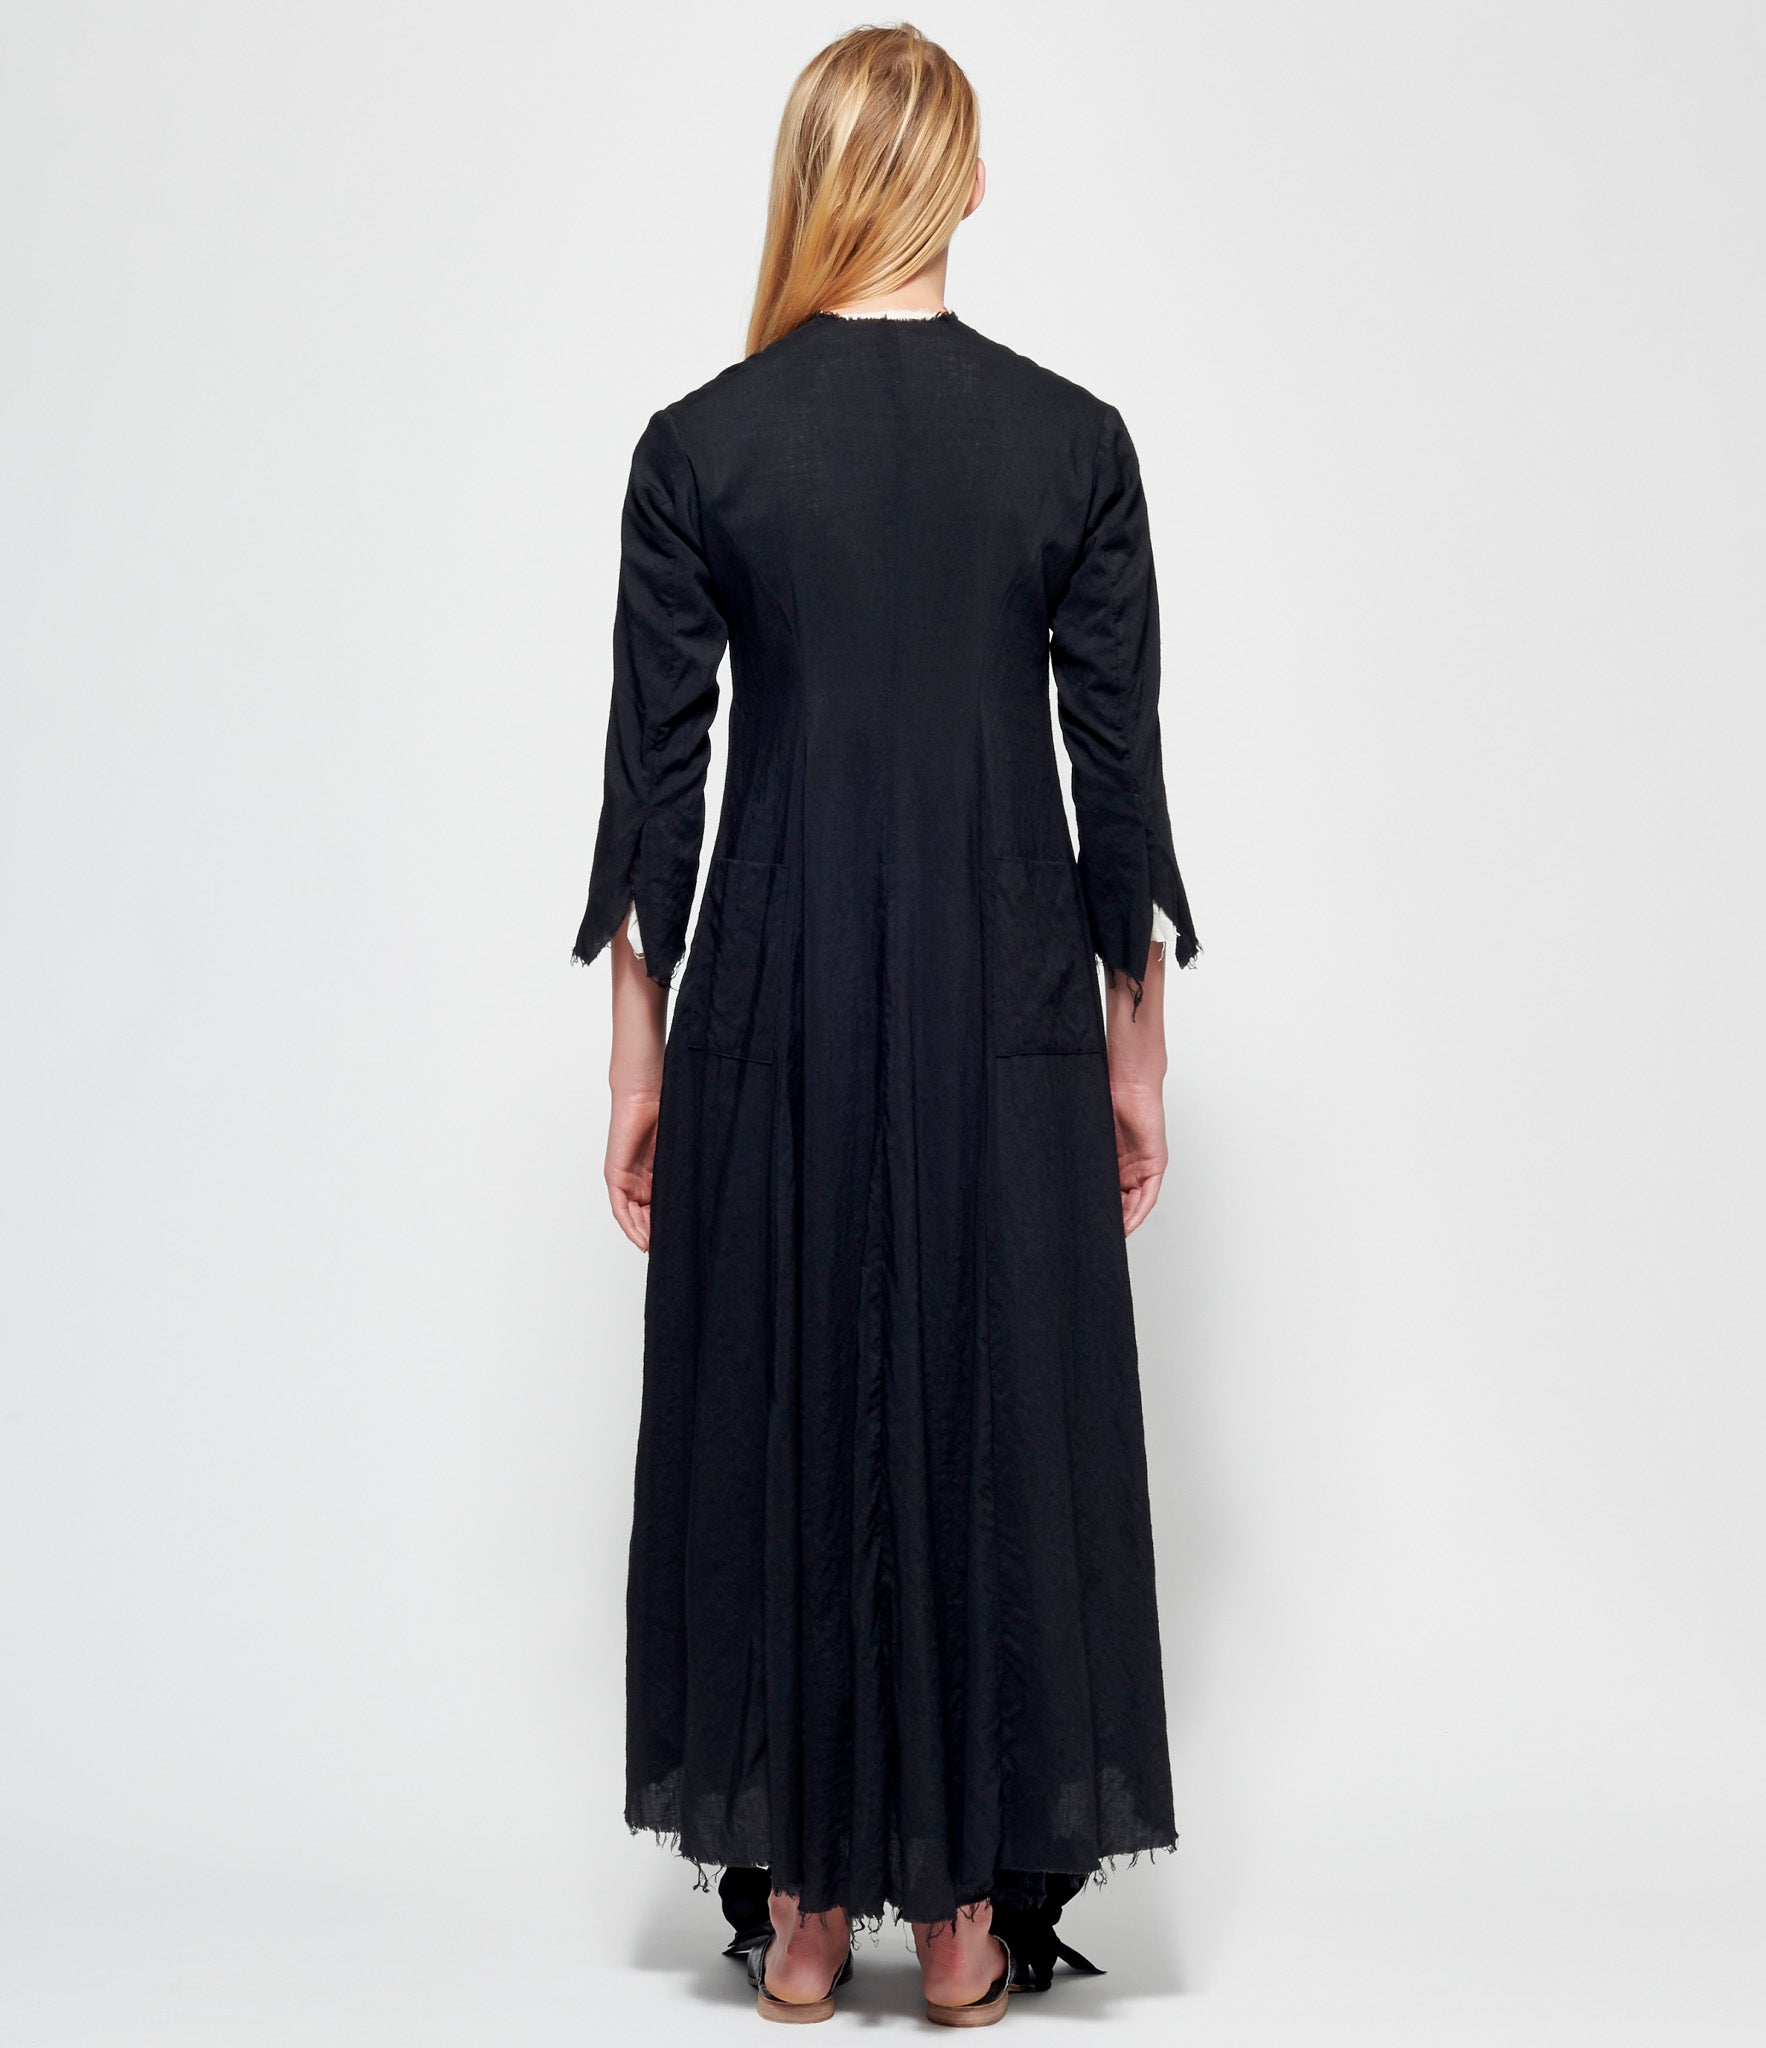 Elena Dawson Black Light Wool Lined House Coat